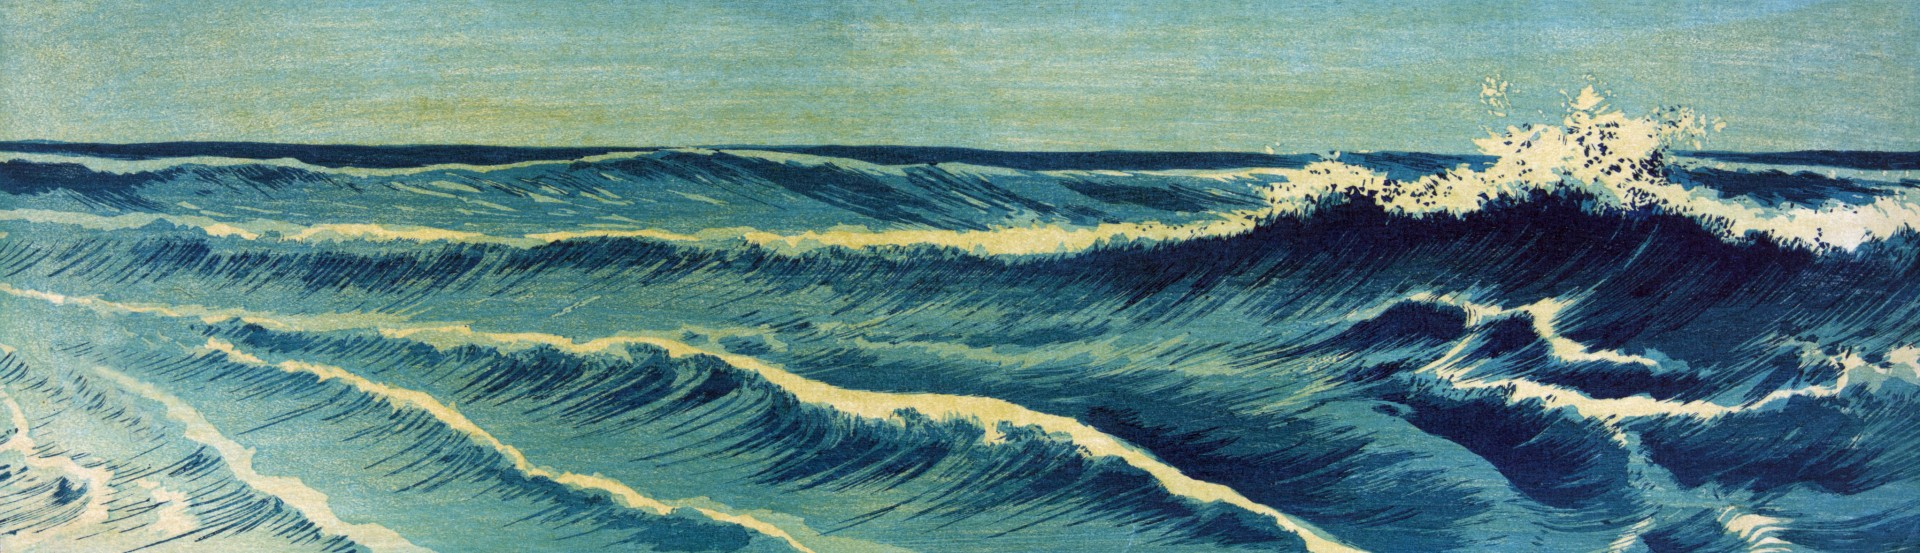 Vintage Japanese sea and waves illustration | sourced via publicdomainpibtures.net